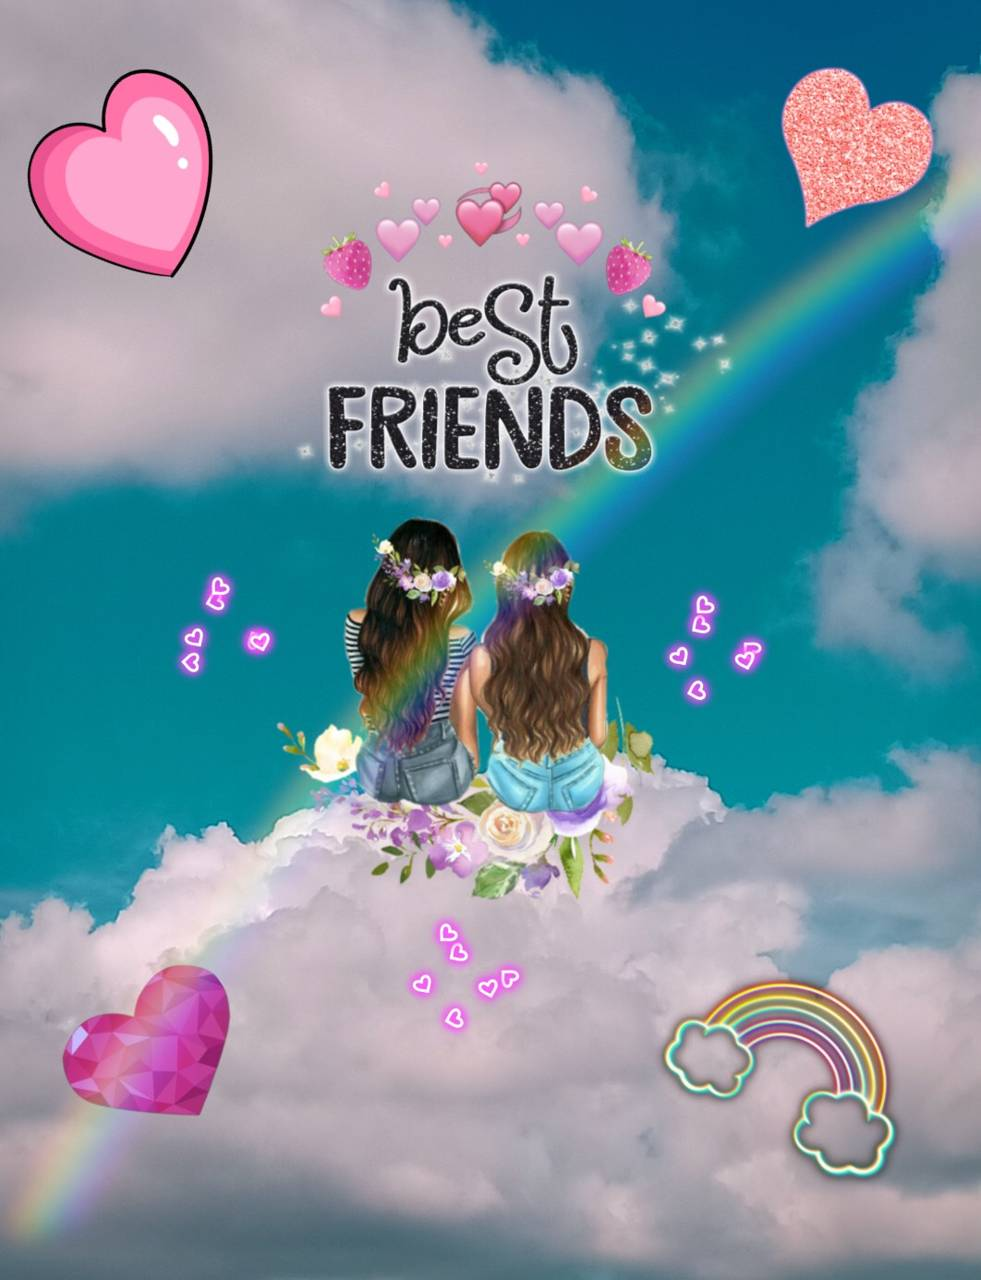 Friend Bff Wallpapers Wallpaper Cave Friends will be friends card. friend bff wallpapers wallpaper cave